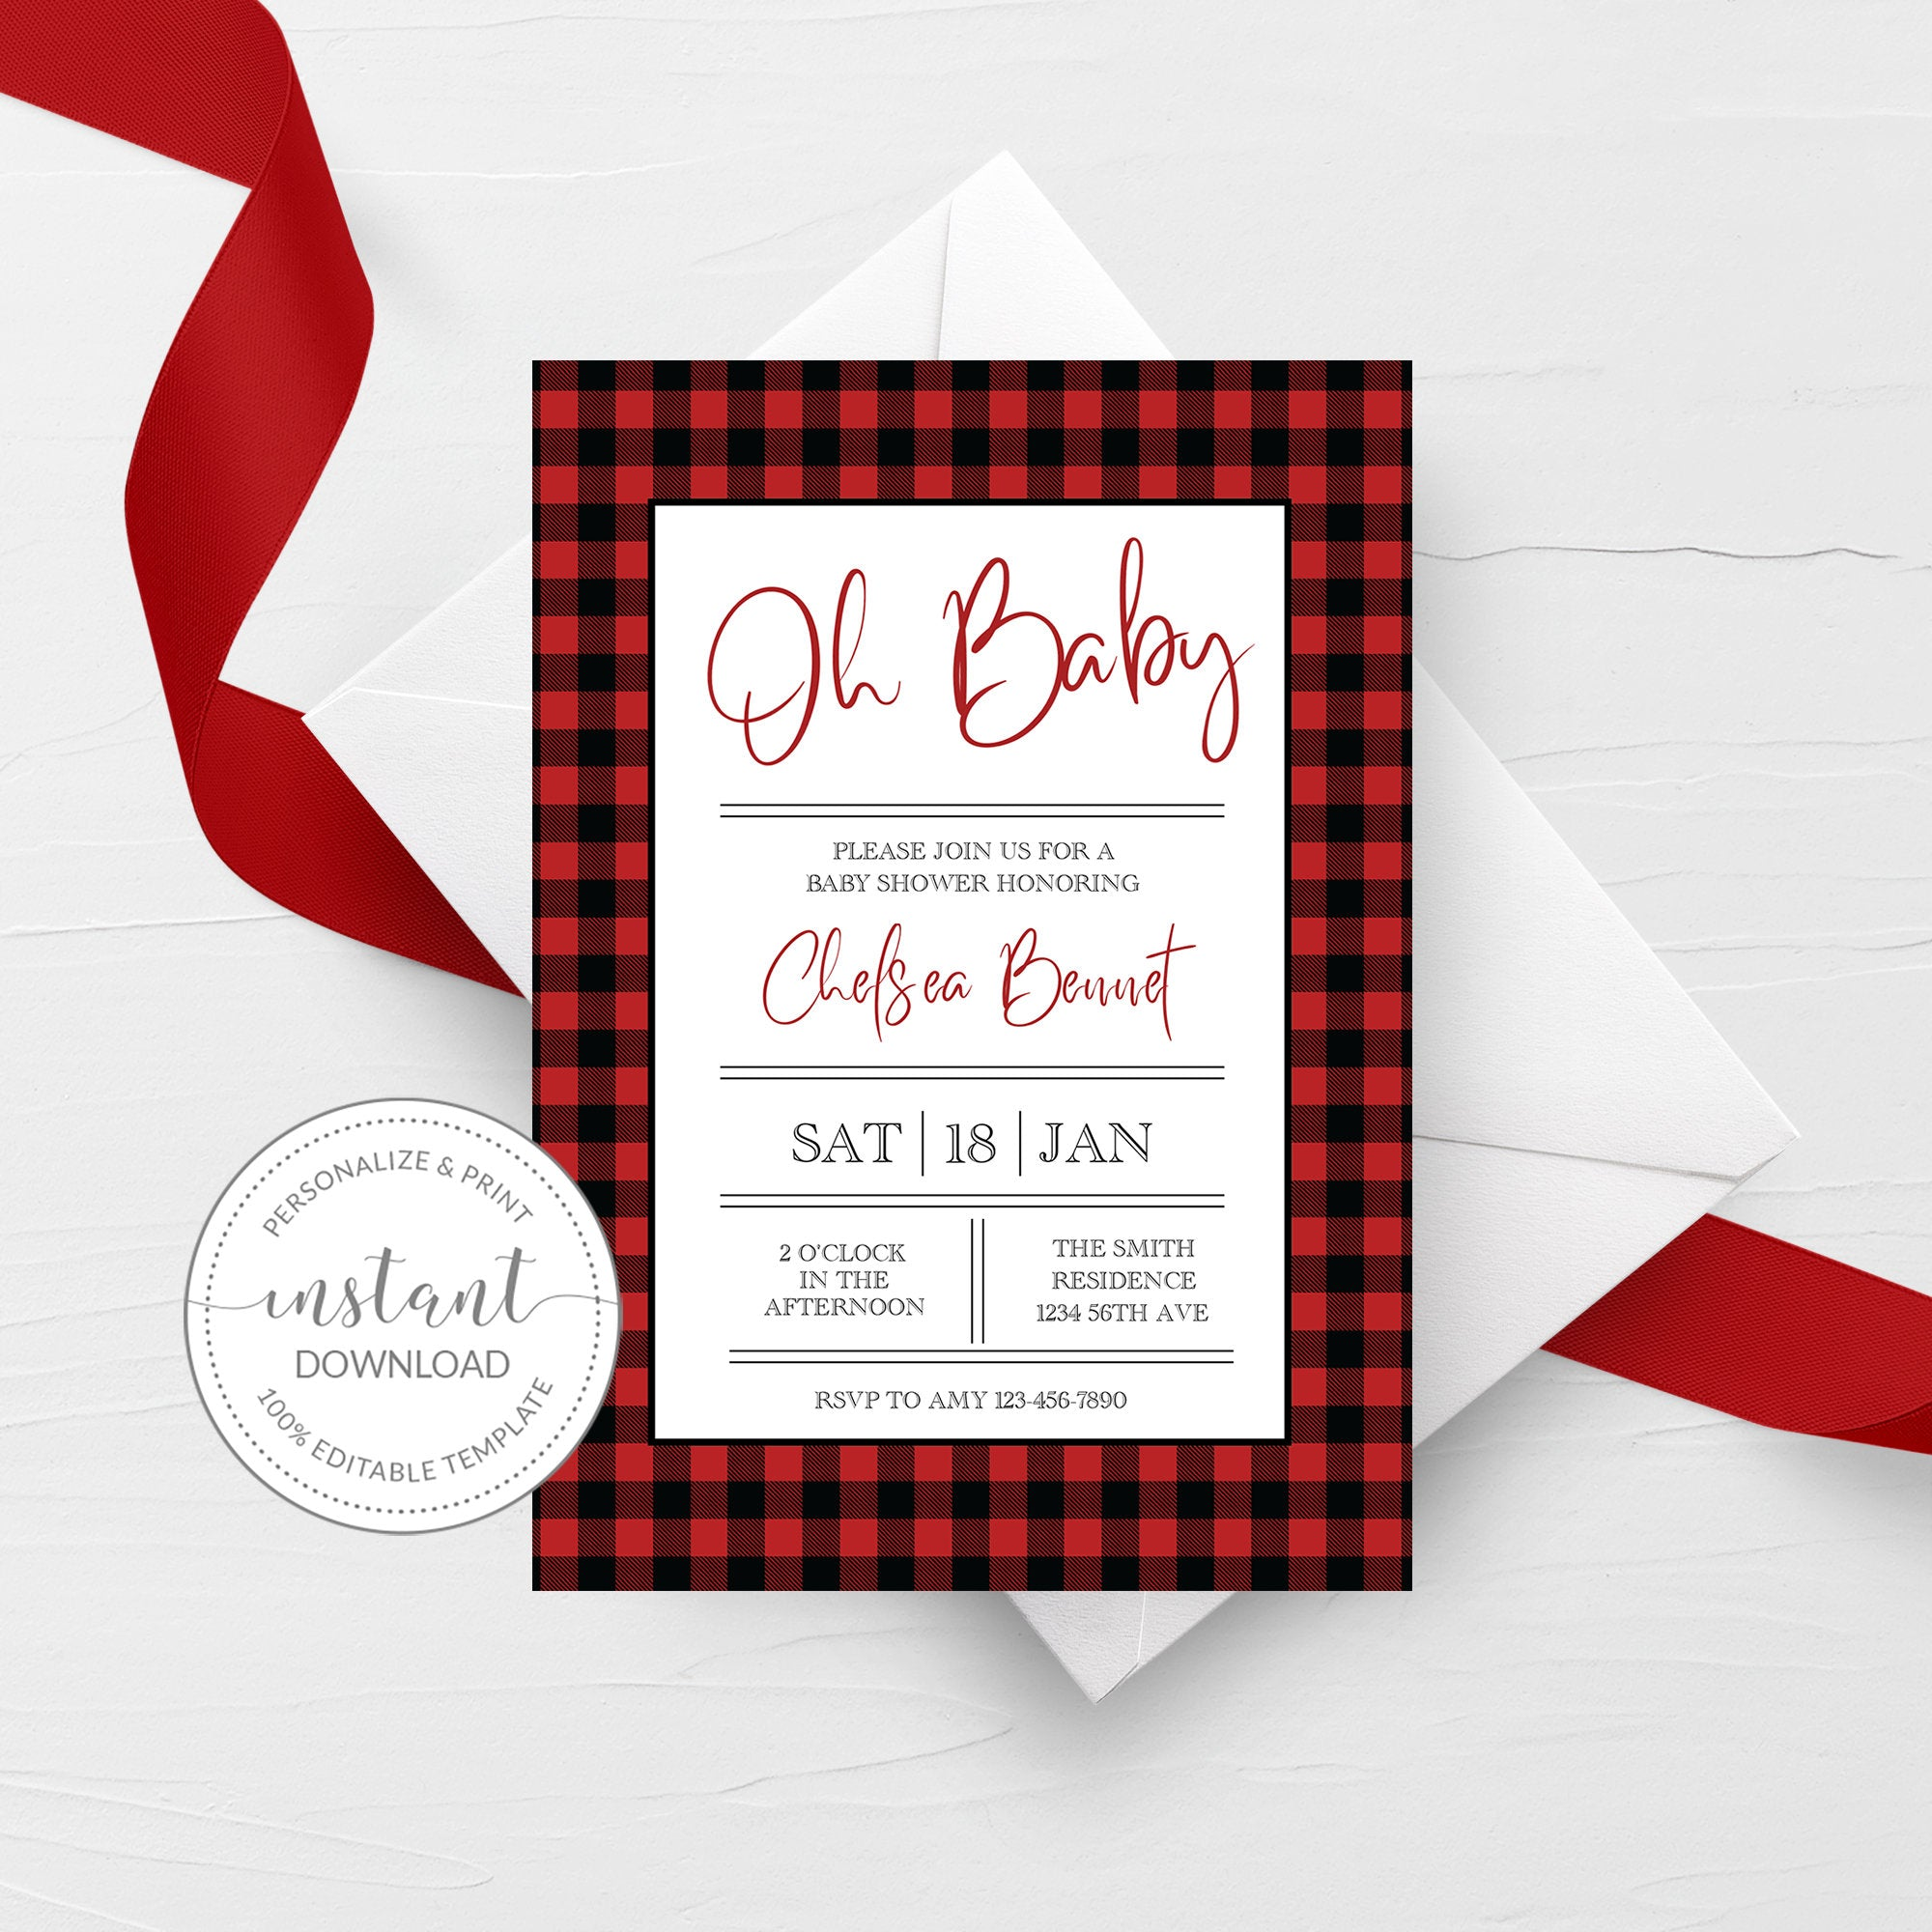 Buffalo Plaid Baby Shower Invitation Template, Lumberjack Baby Shower Invite, Editable DIGITAL DOWNLOAD - BP100 - @PlumPolkaDot